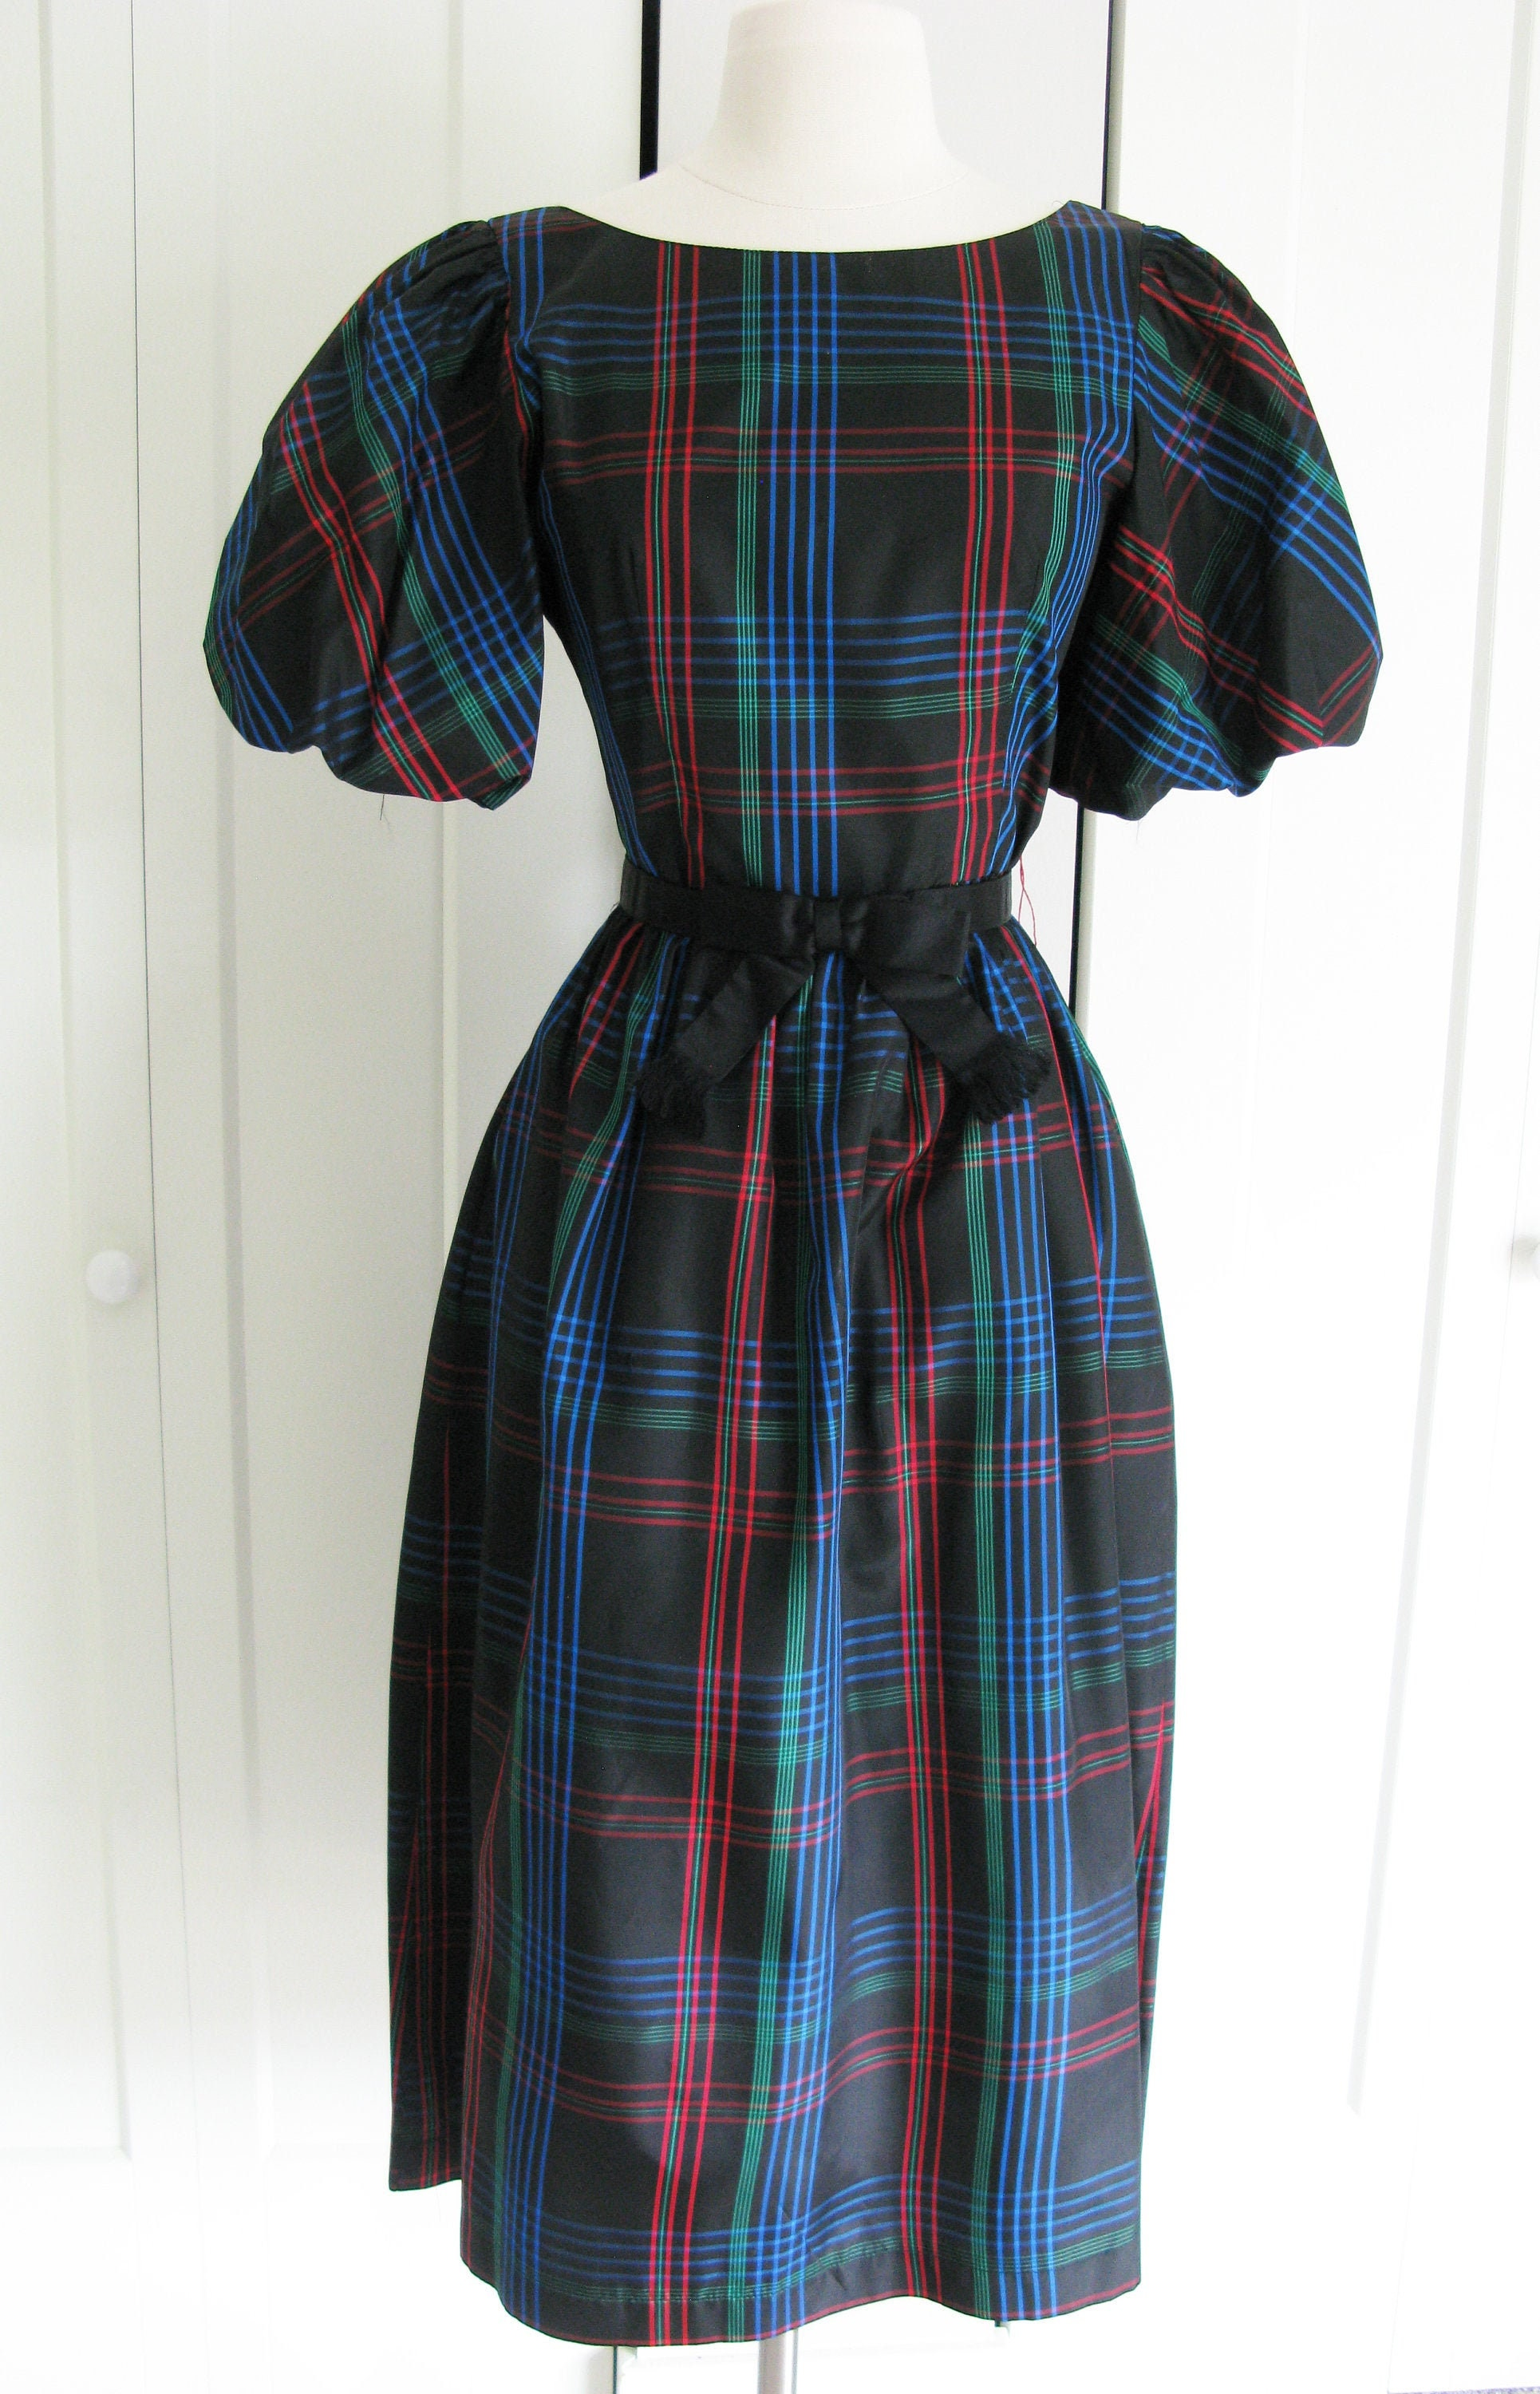 80s Dresses | Casual to Party Dresses Lanz Vintage 1980s Black Plaid Taffeta Party Dress Puffy Short Sleeves  Size SM $22.00 AT vintagedancer.com